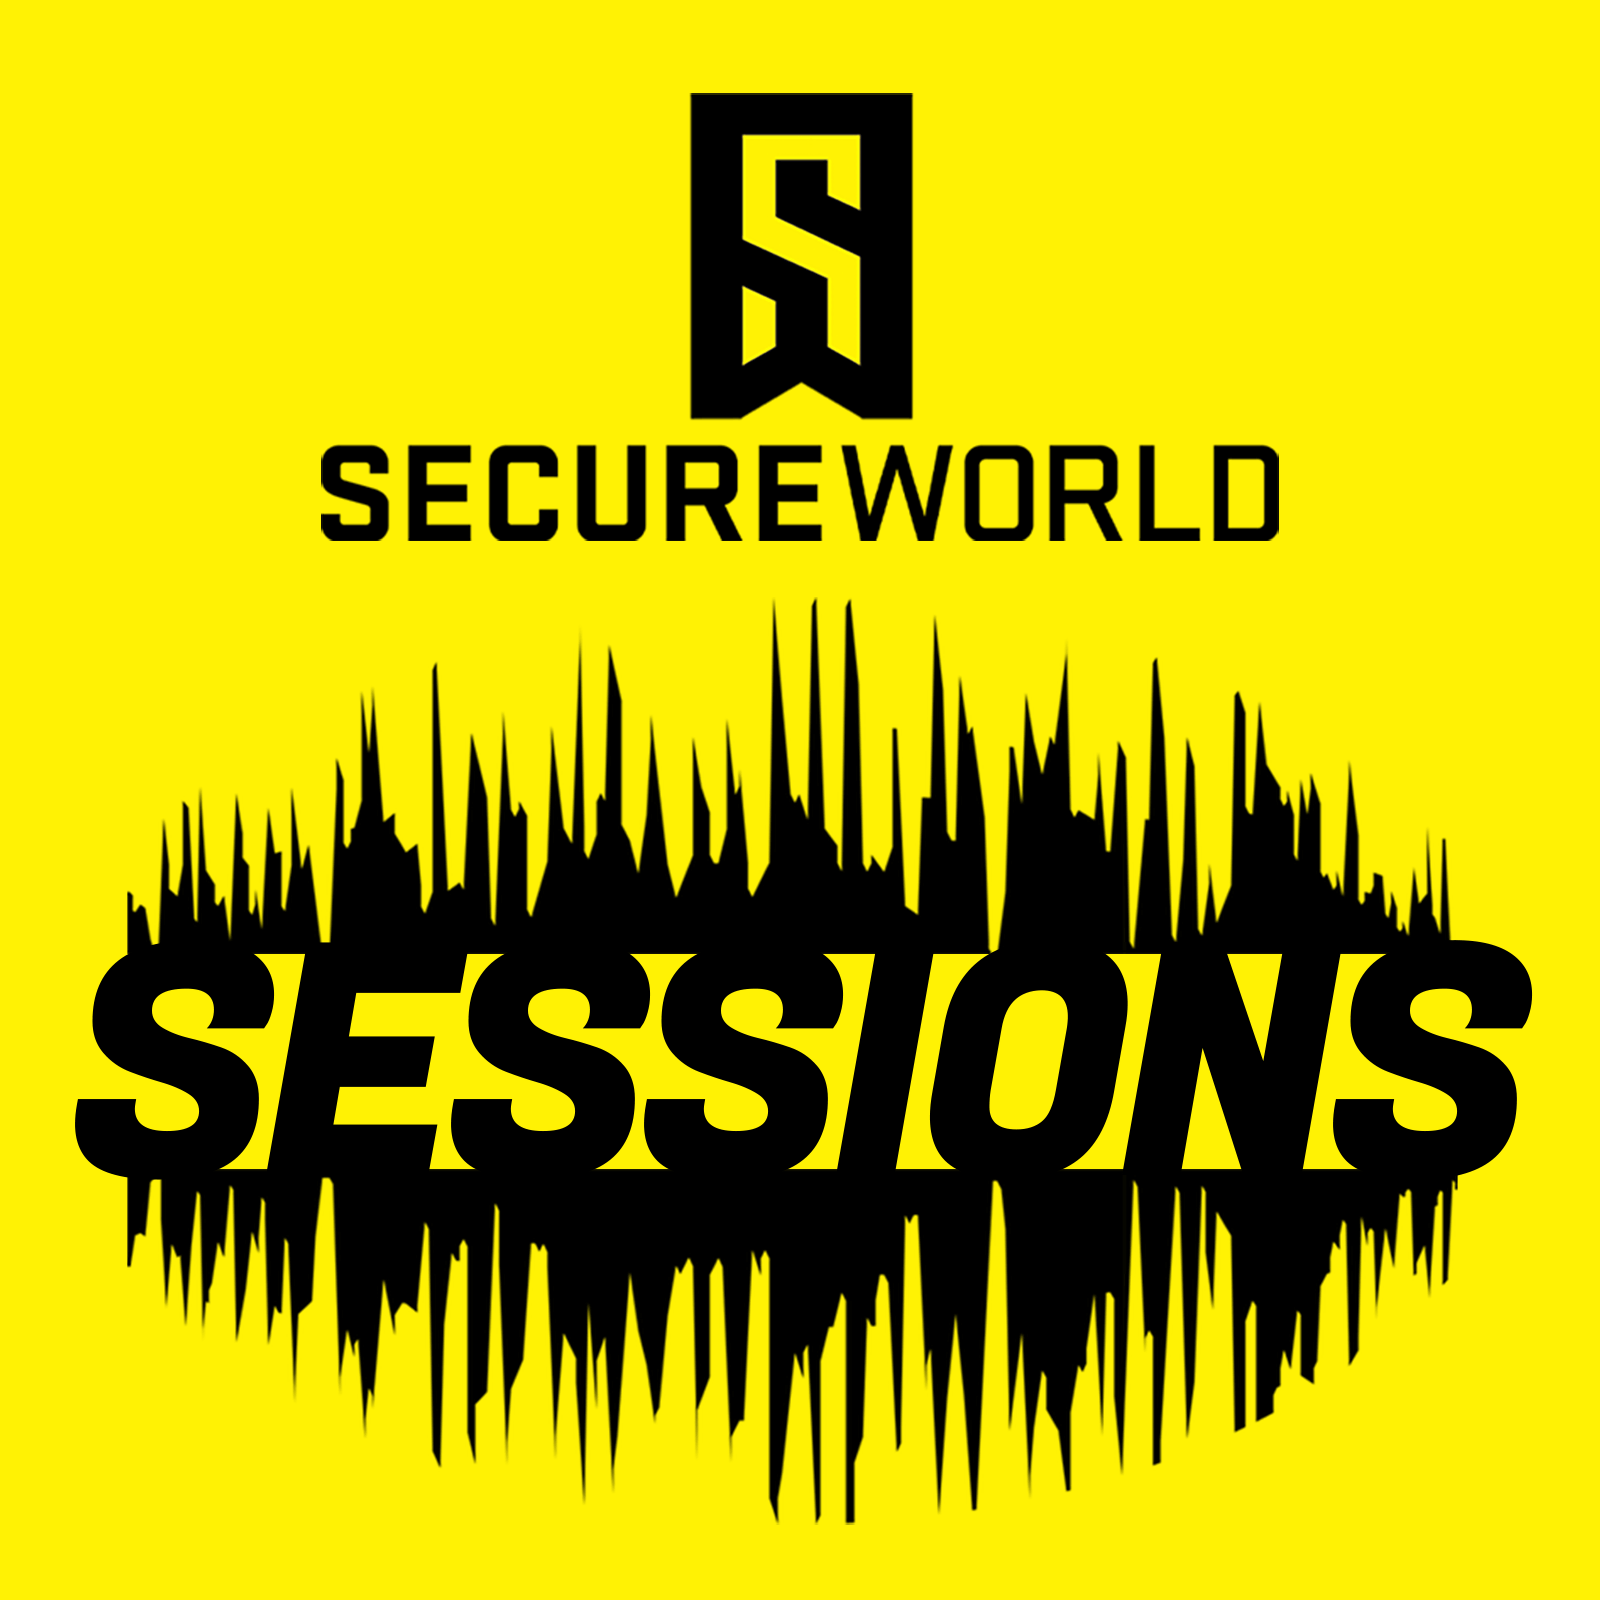 The SecureWorld Sessions show art